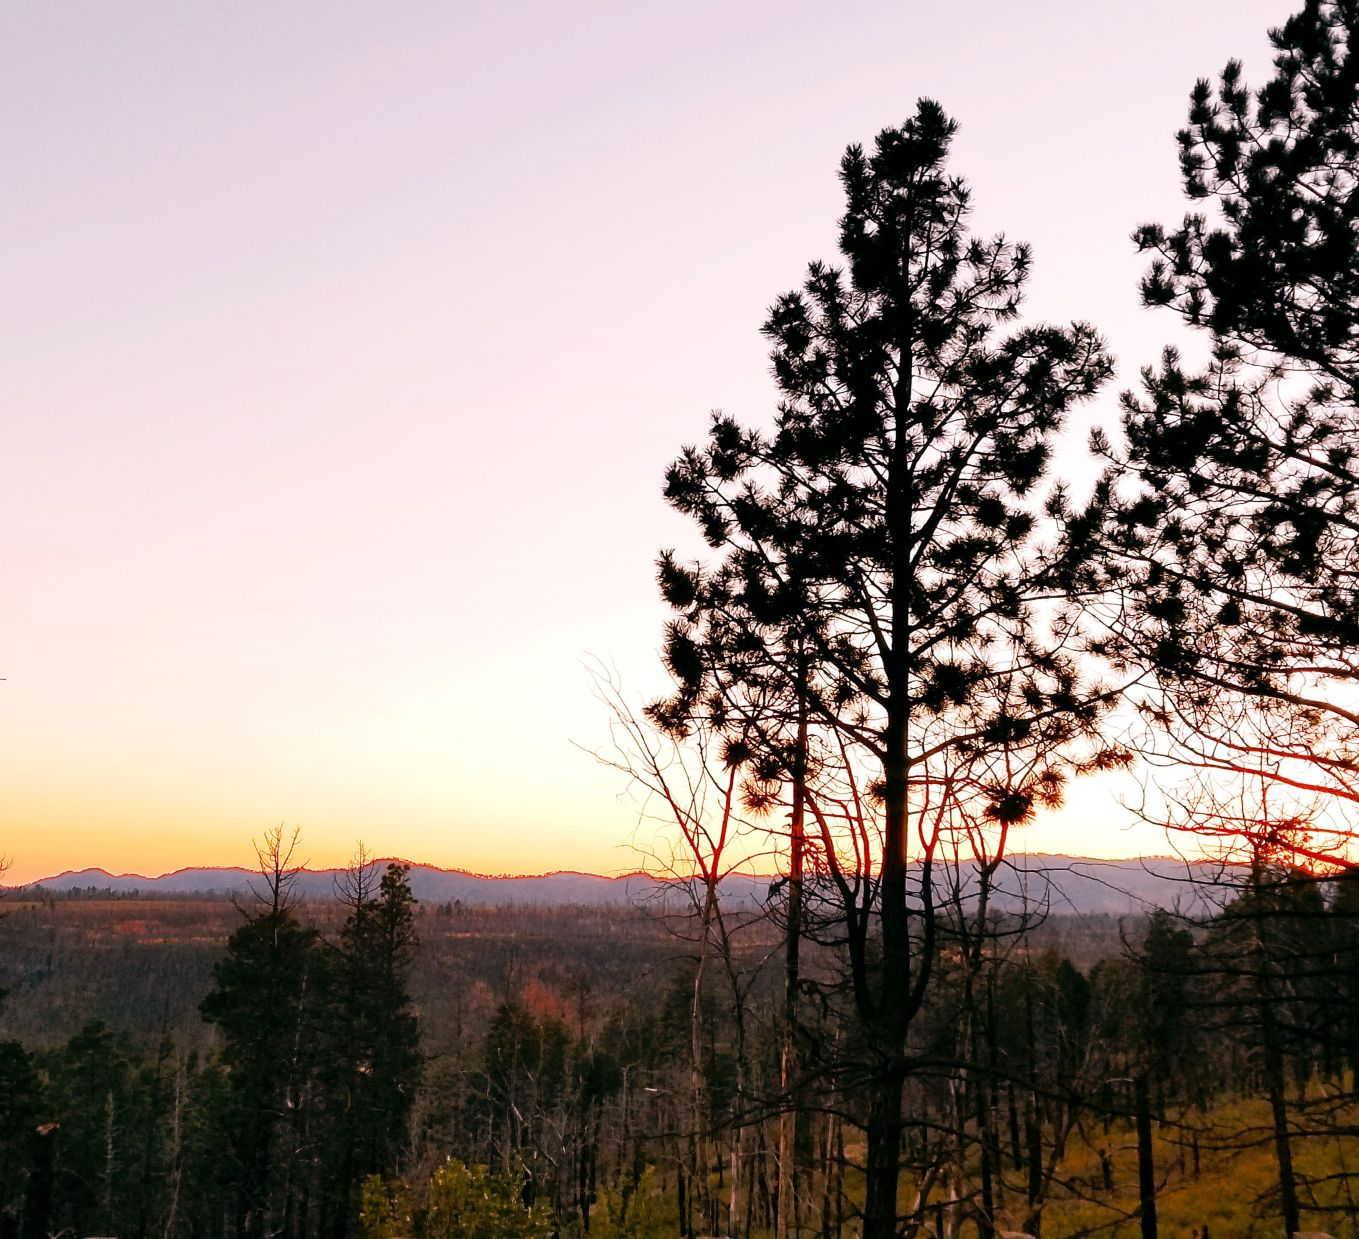 The sun setting over the scorched forests of the Jemez Mountains.